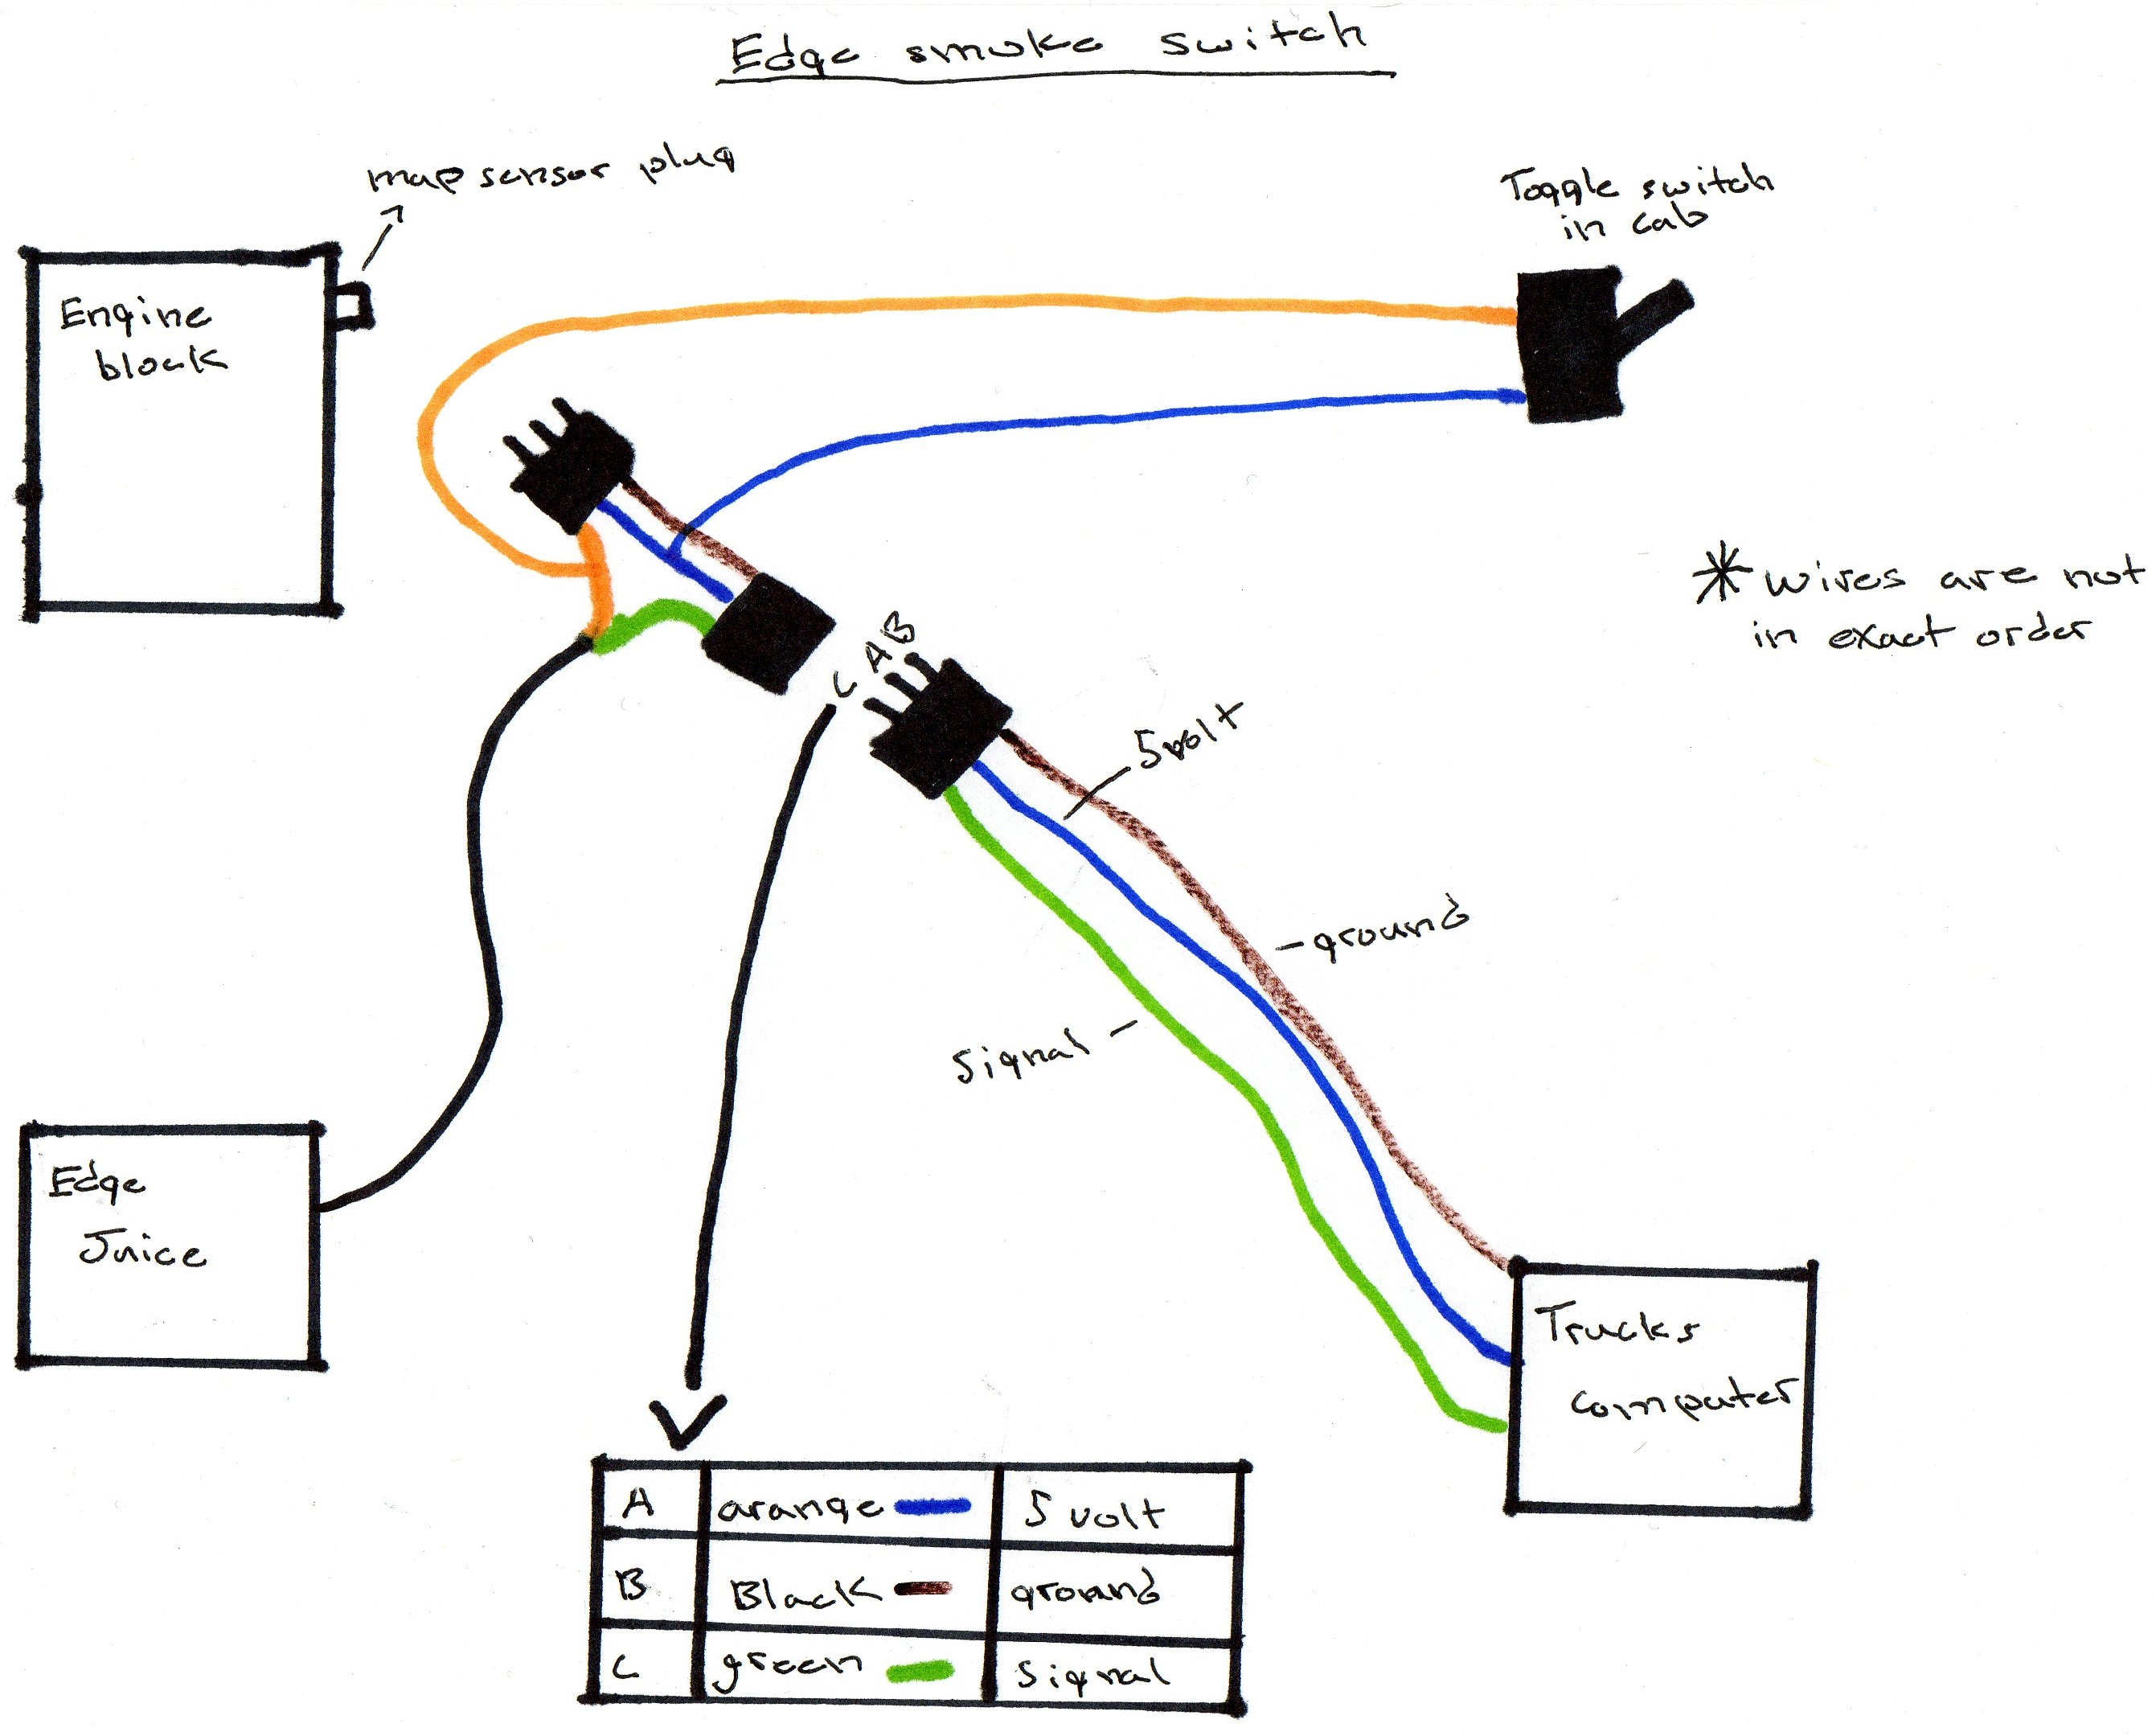 Fuse Box For 1999 Dodge Ram 3500 Wiring Library 2000 2500 Trailer Diagram Turn Smoke Switch Off No Boost On Gauge Cummins